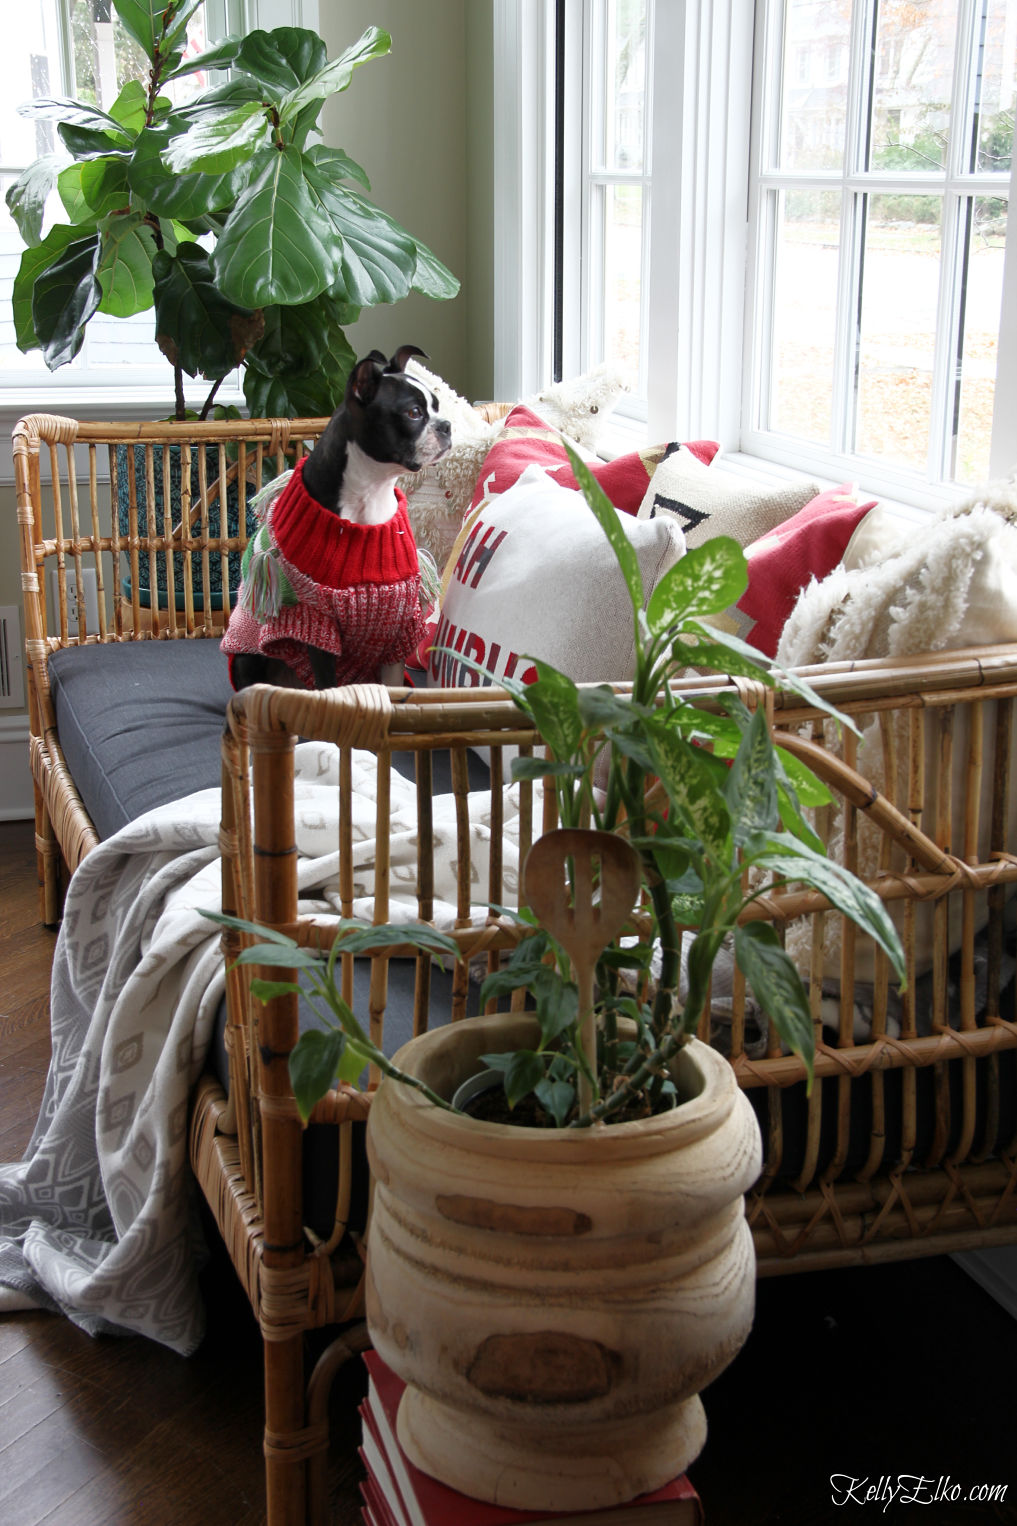 Love this boho rattan daybed filled with colorful pillows and plants kellyelko.com #sunroom #sunroomdecor #houseplants #interiordecorate #interiordecor #bohodecor #boho #eclecticdecor #sunroom